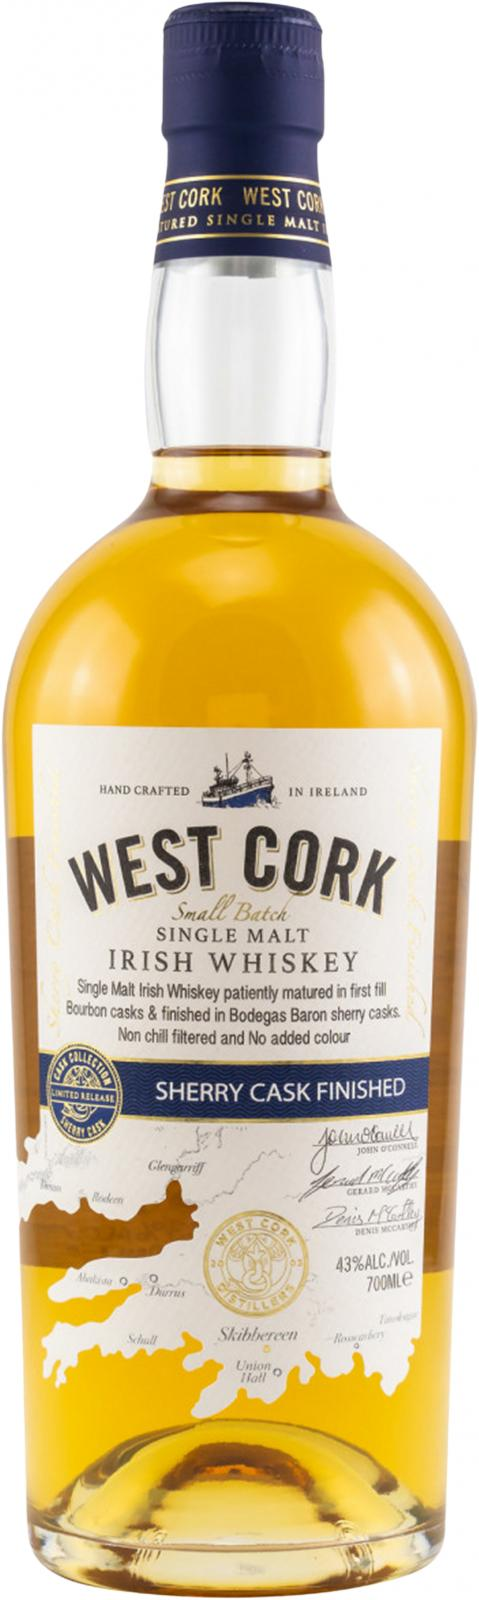 West Cork Sherry Cask Finished